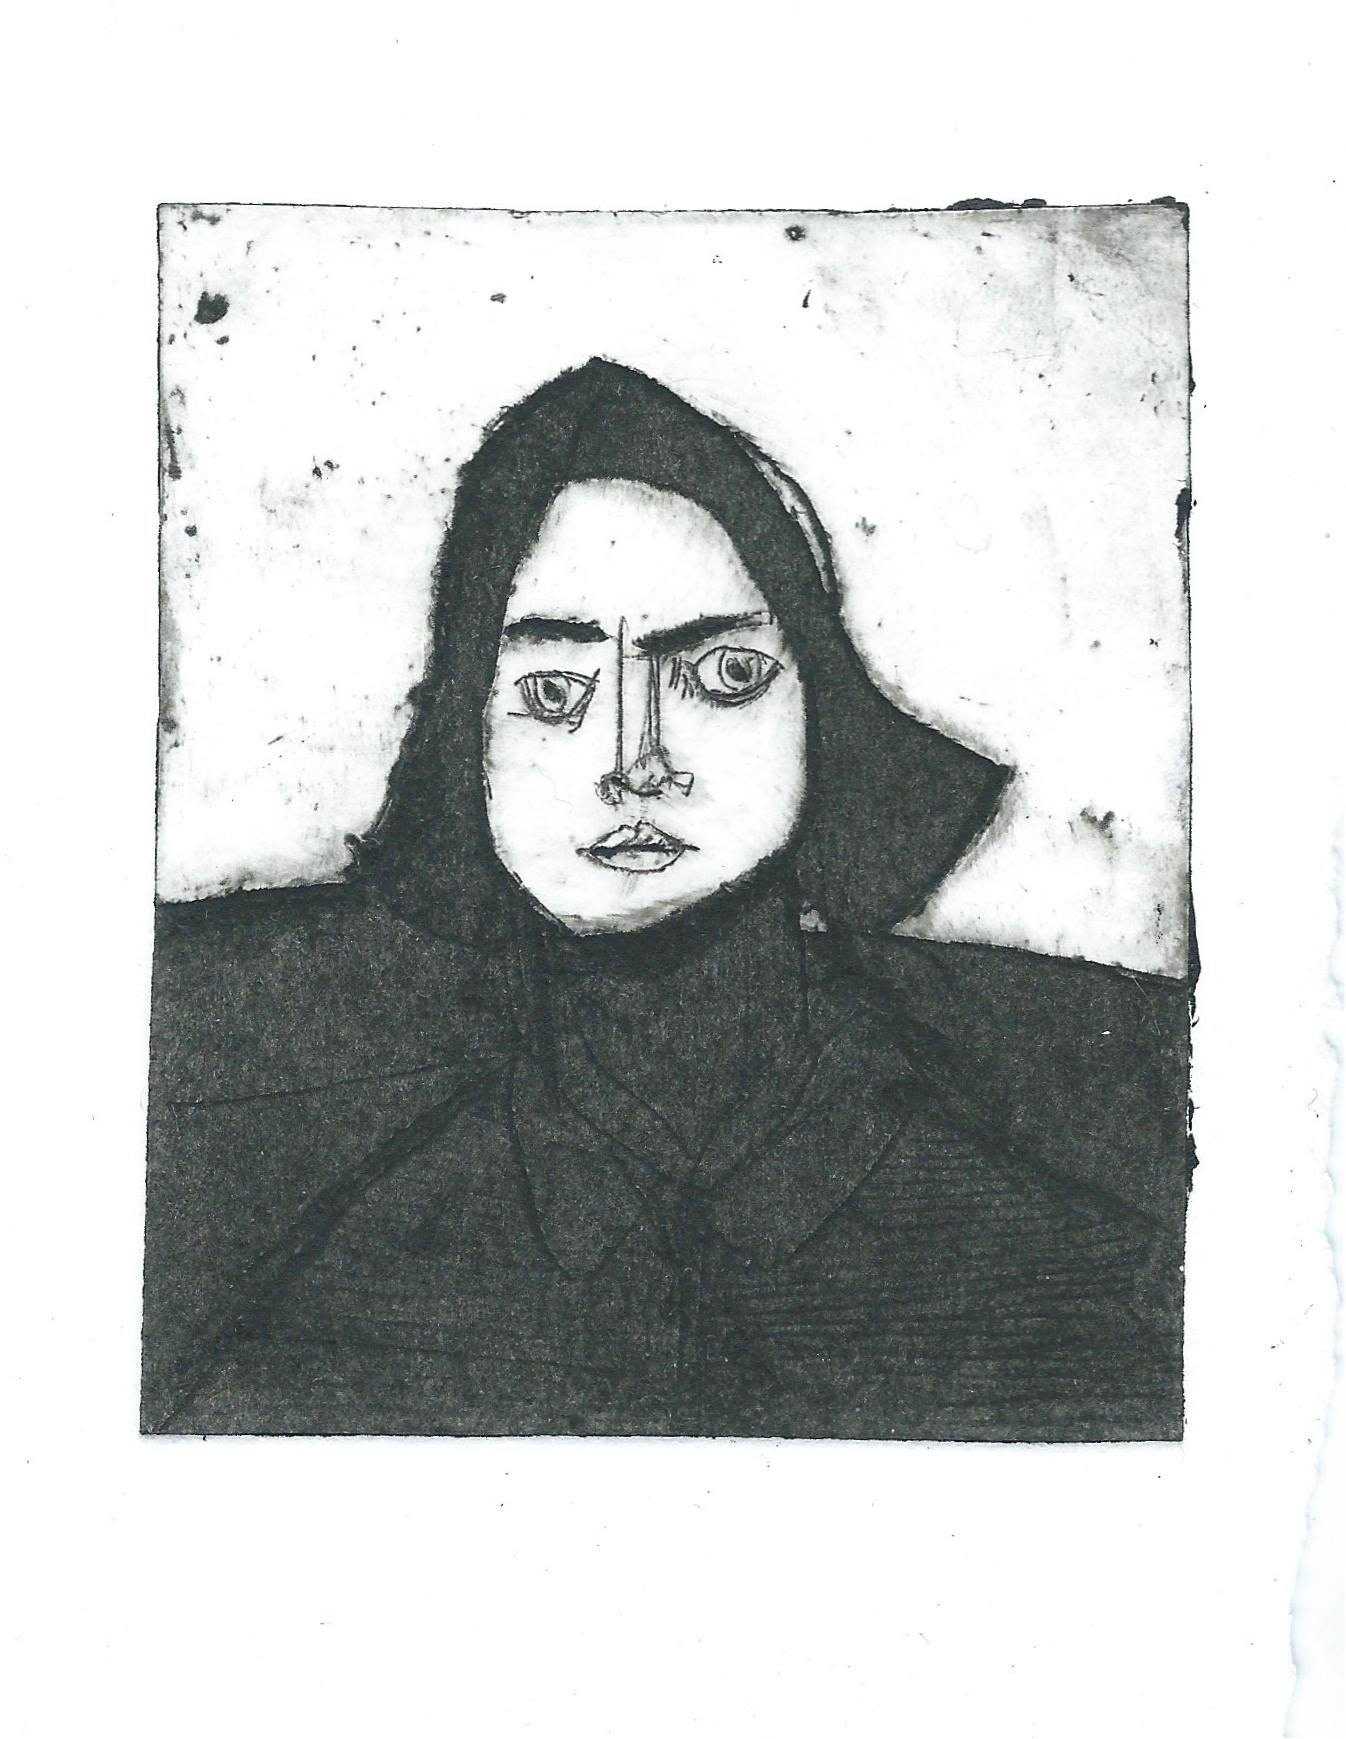 "<span class=""link fancybox-details-link""><a href=""/exhibitions/17/works/image_standalone759/"">View Detail Page</a></span><p><strong>Charlotte Murdoch</strong></p><p>Untitled (Direct Stare)</p><p>drypoint, ed of 5</p><p>15 x 25cm</p><p>£260 framed</p><p>£210 unframed</p><p> </p>"